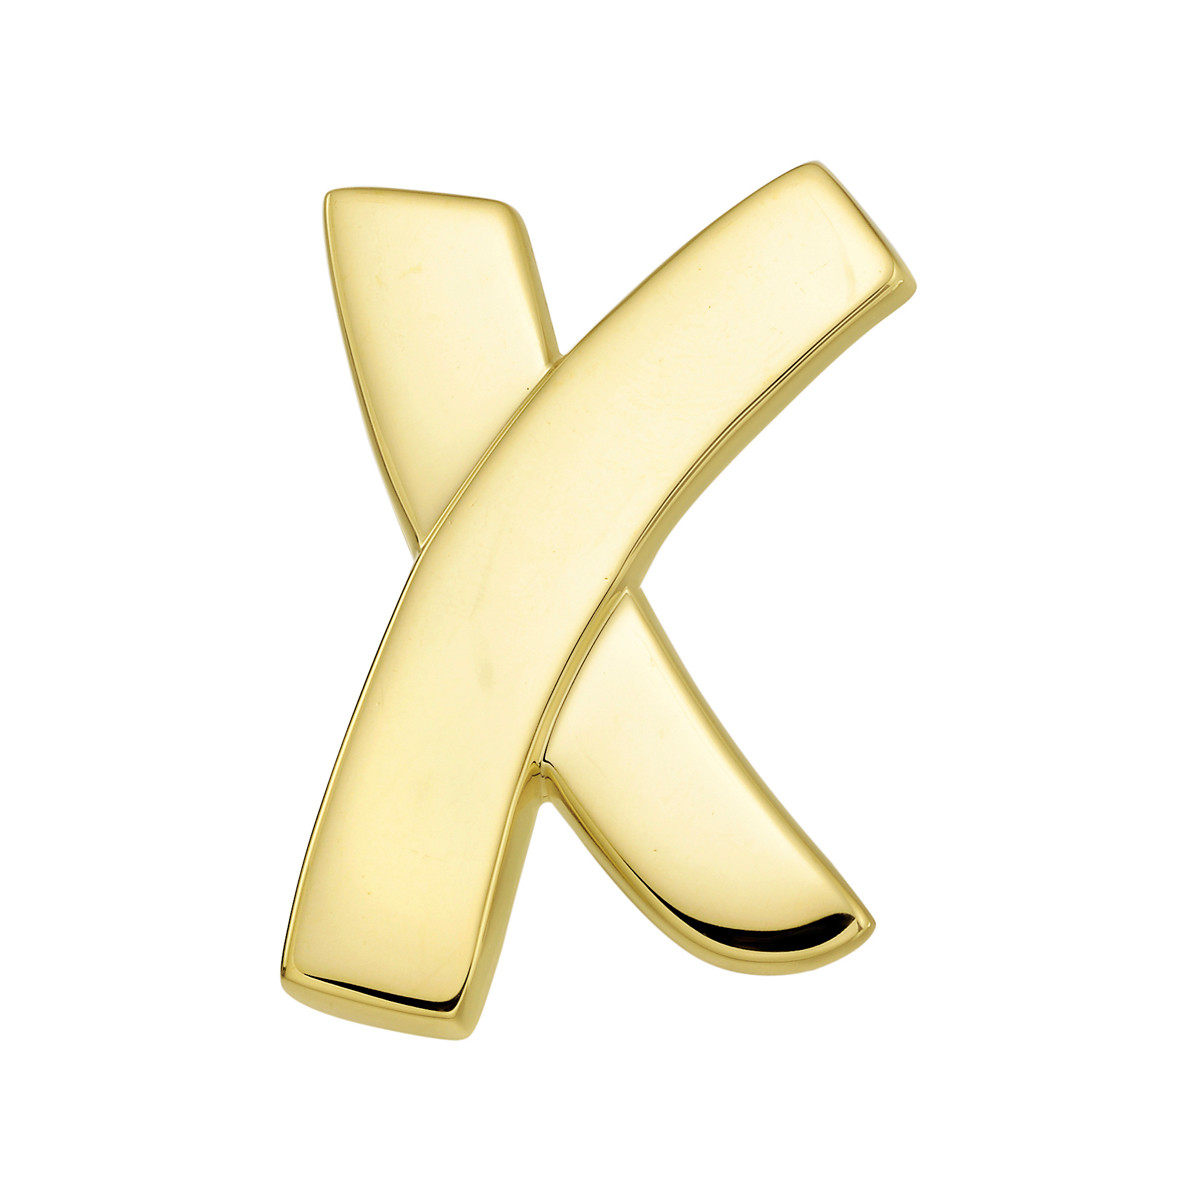 4fa3a5bcf Estate Tiffany & Co. Paloma Picasso Large 18k Yellow Gold 'X' Pin ...